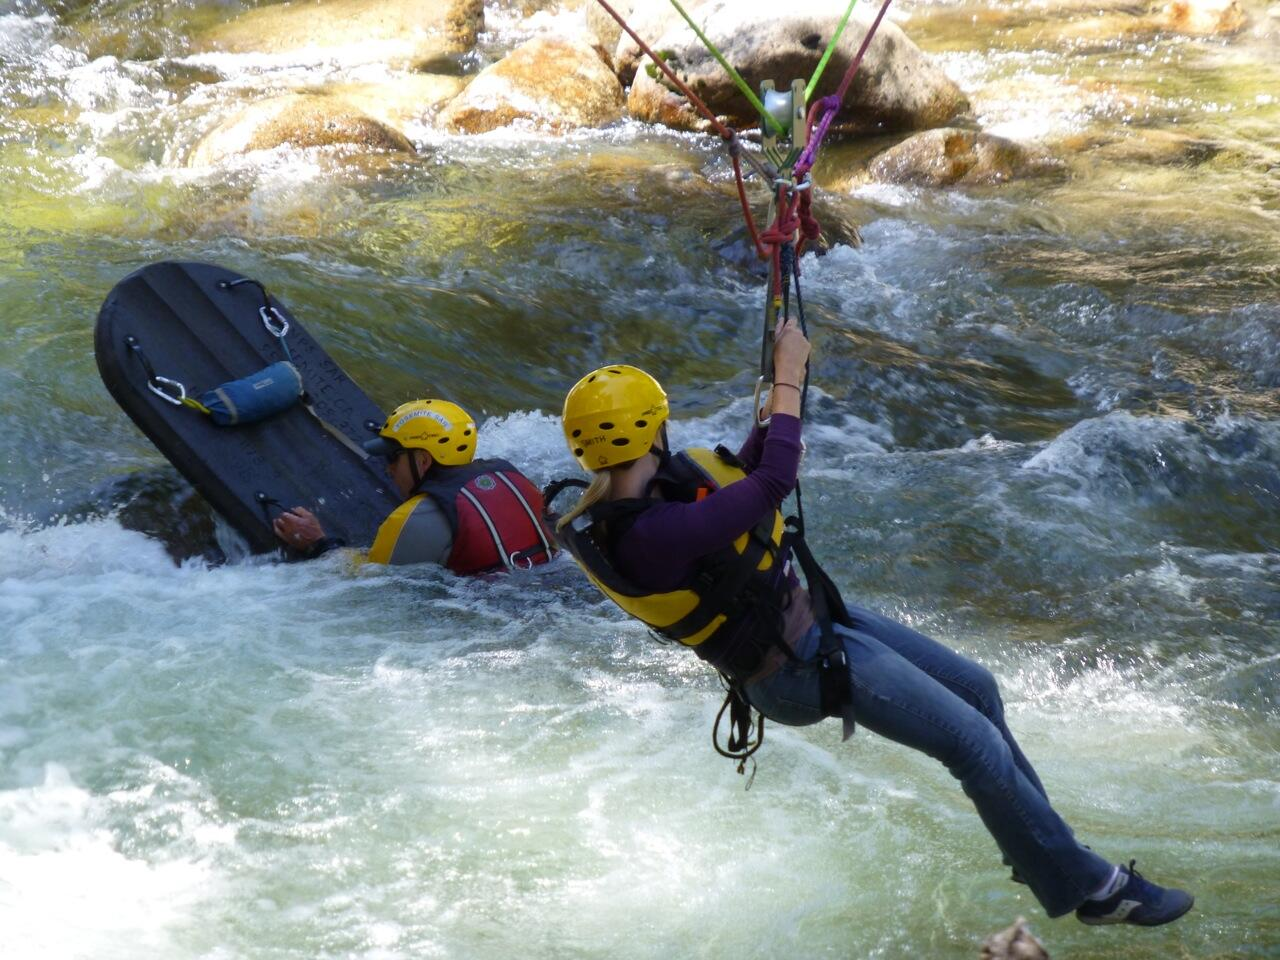 """Yosemite Park Rangers & Search and Rescue personnel demonstrate """"highline"""" rescue techniques on the Merced River http://t.co/doeXCqcaW8"""